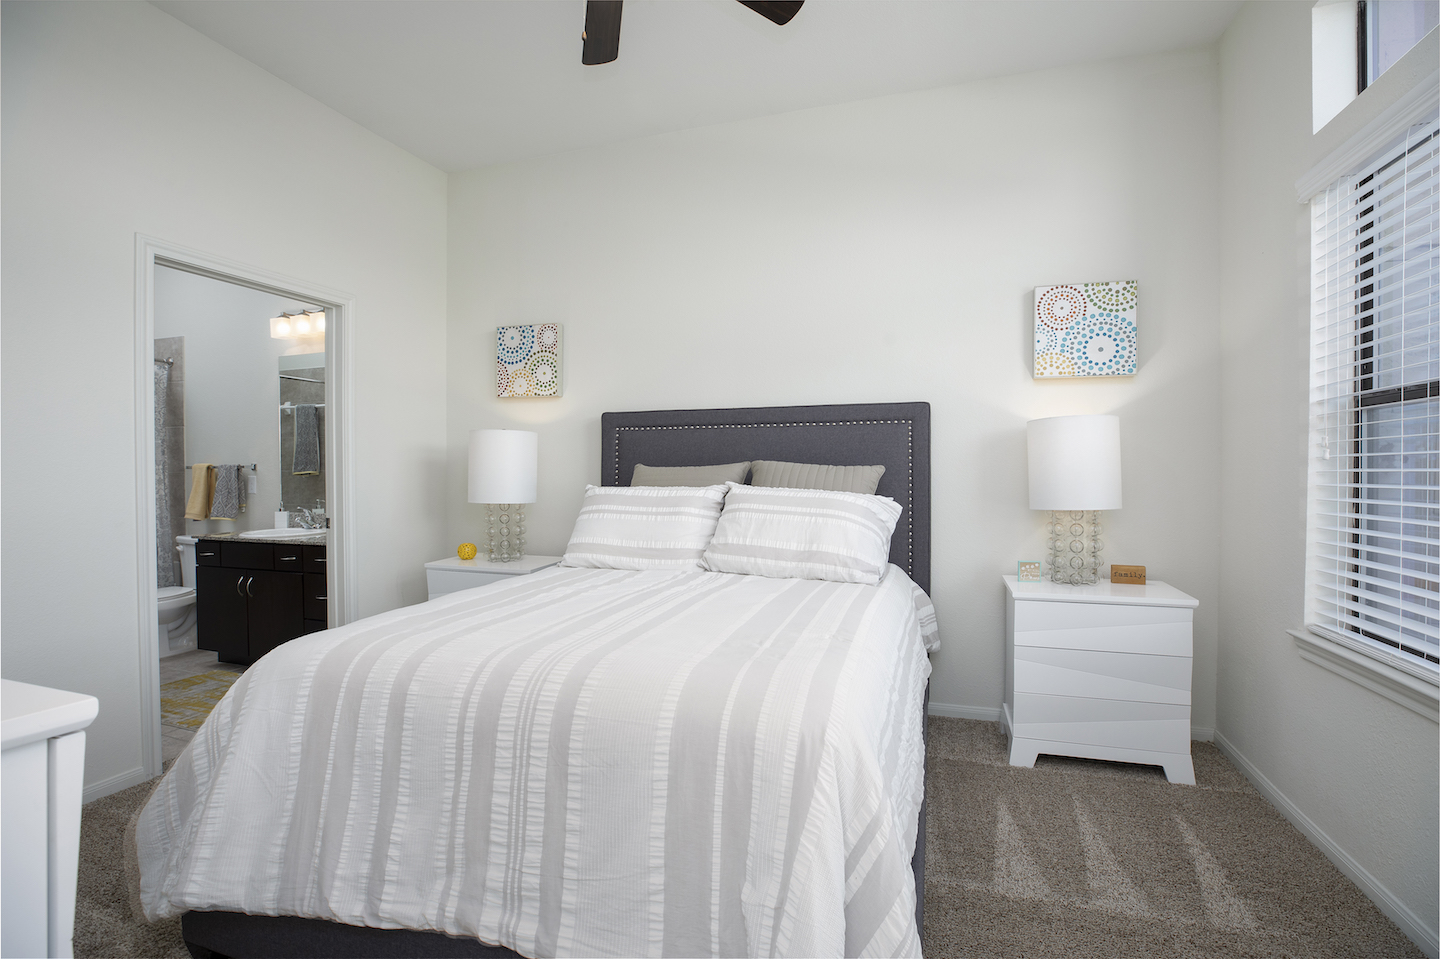 Spacious Bedrooms With Large Windows At Haven at Main Apartments In Houston, TX